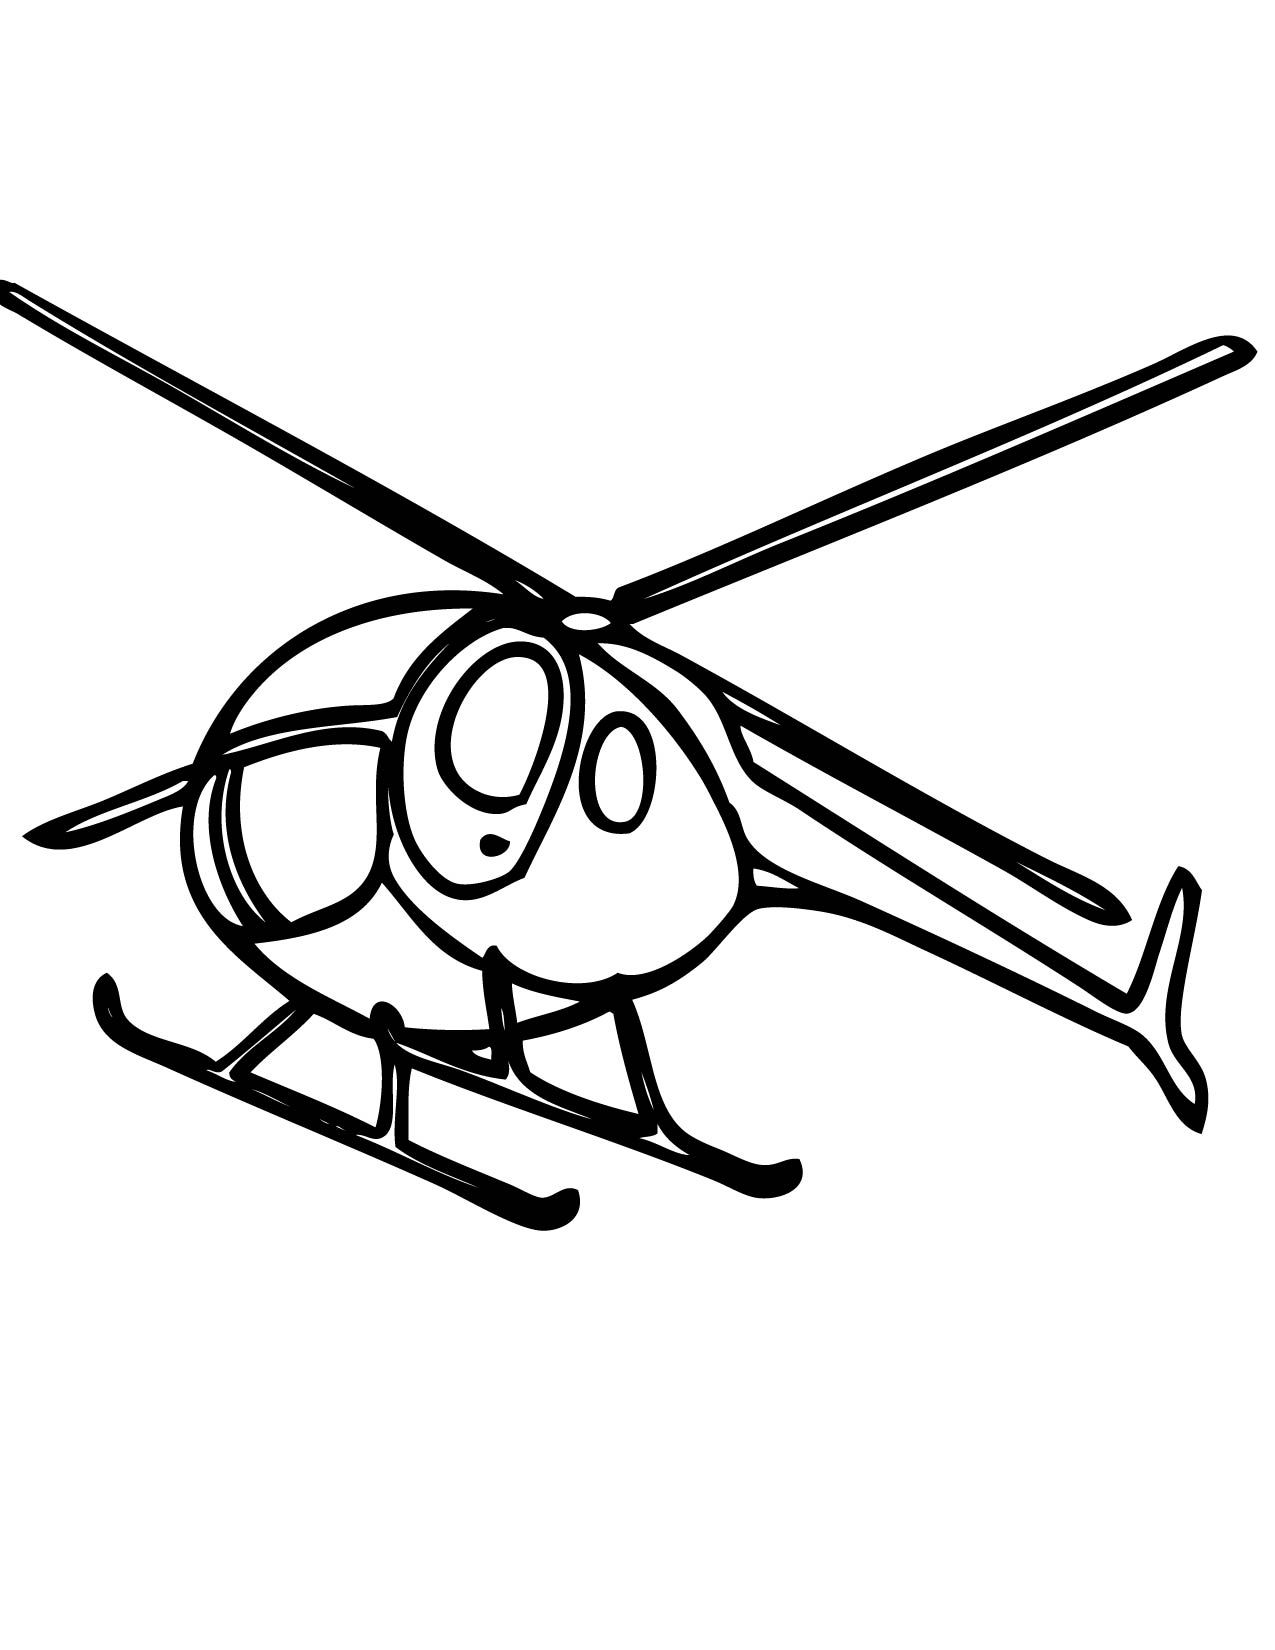 helicopters with a small form factor and modern helicopters